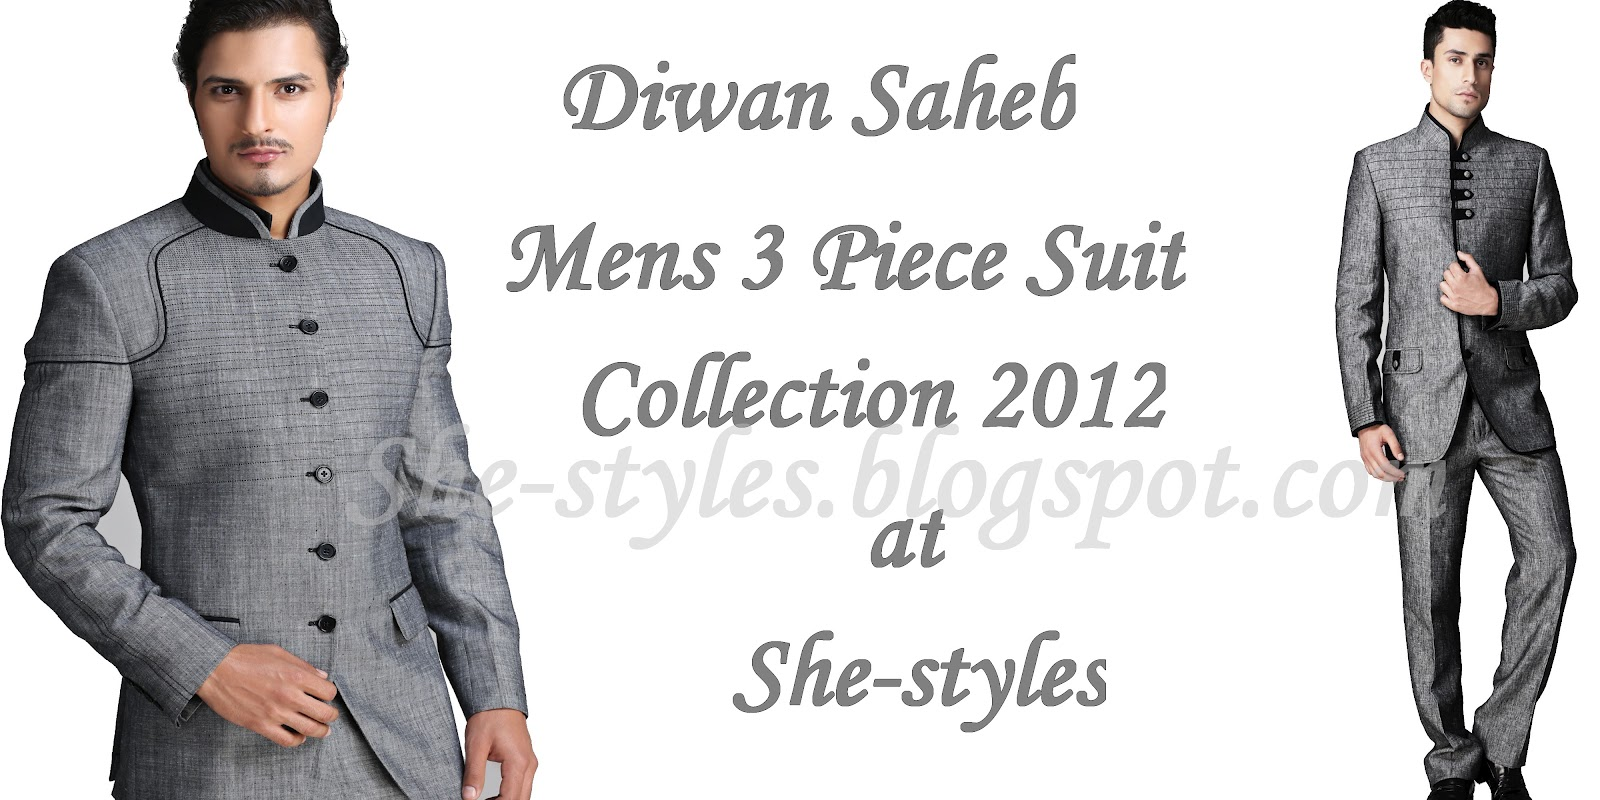 casual dress jackets for men Modern 3 Piece Suits for Men | Three Piece Suit | Indian Office Wear